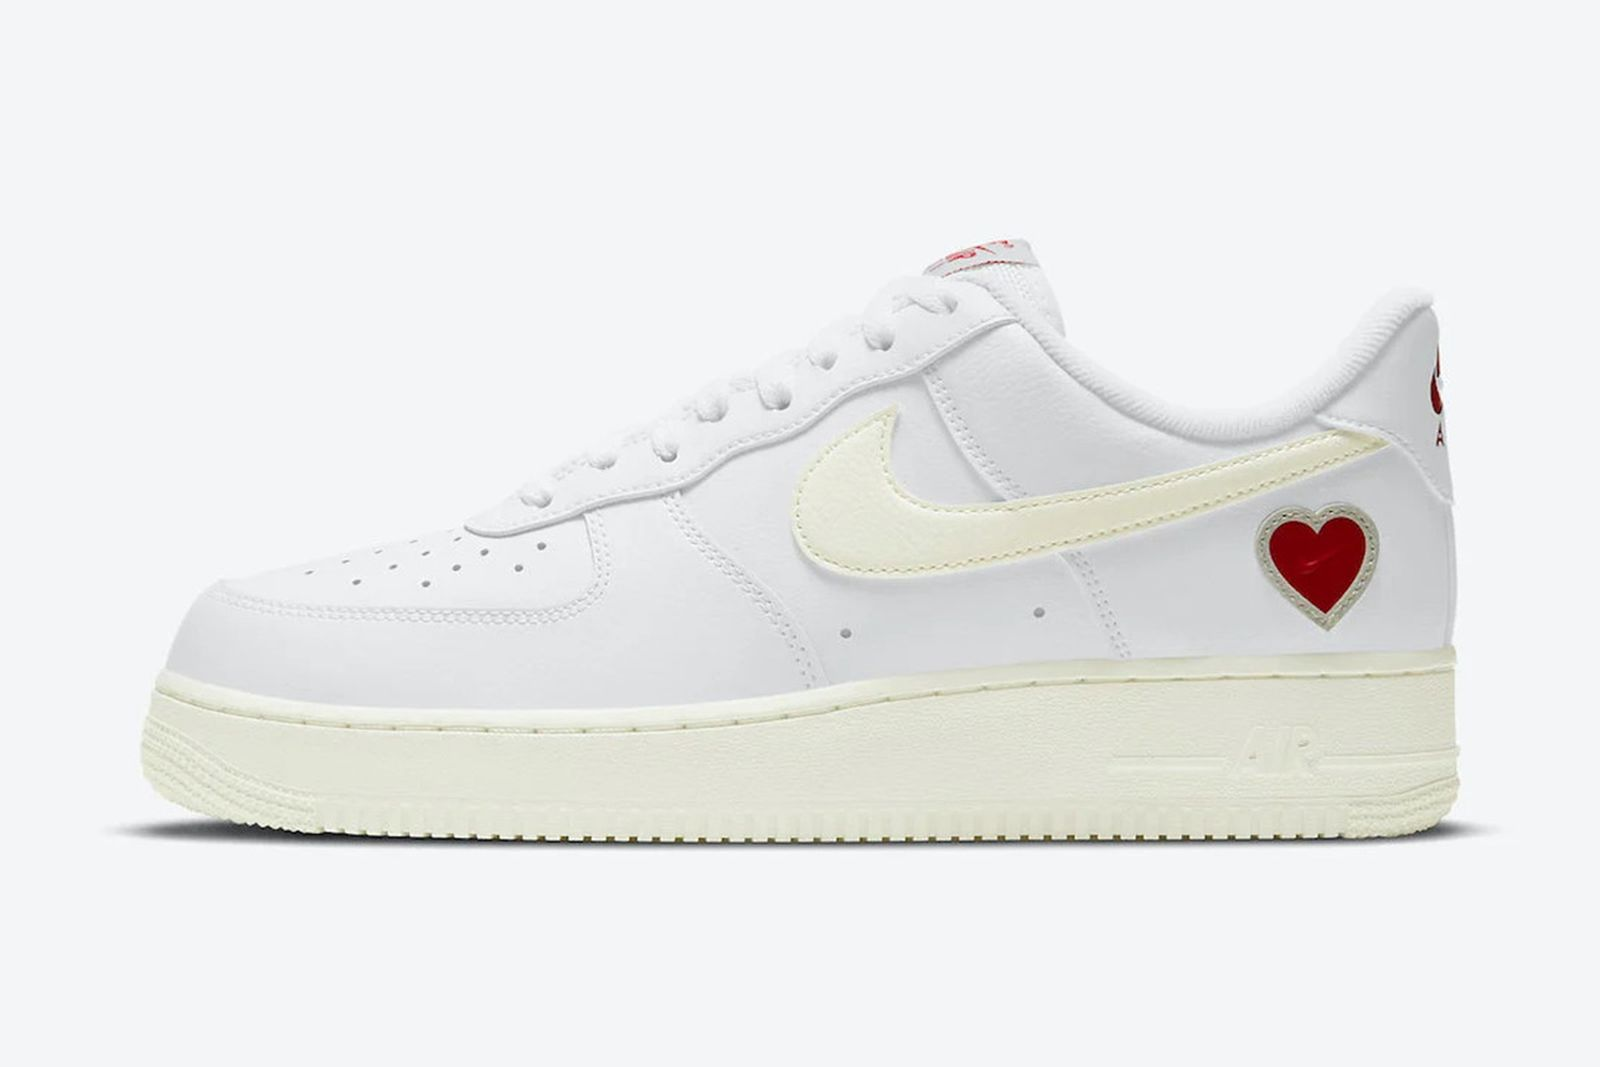 nike-air-force-1-valentines-day-2021-release-date-price-02